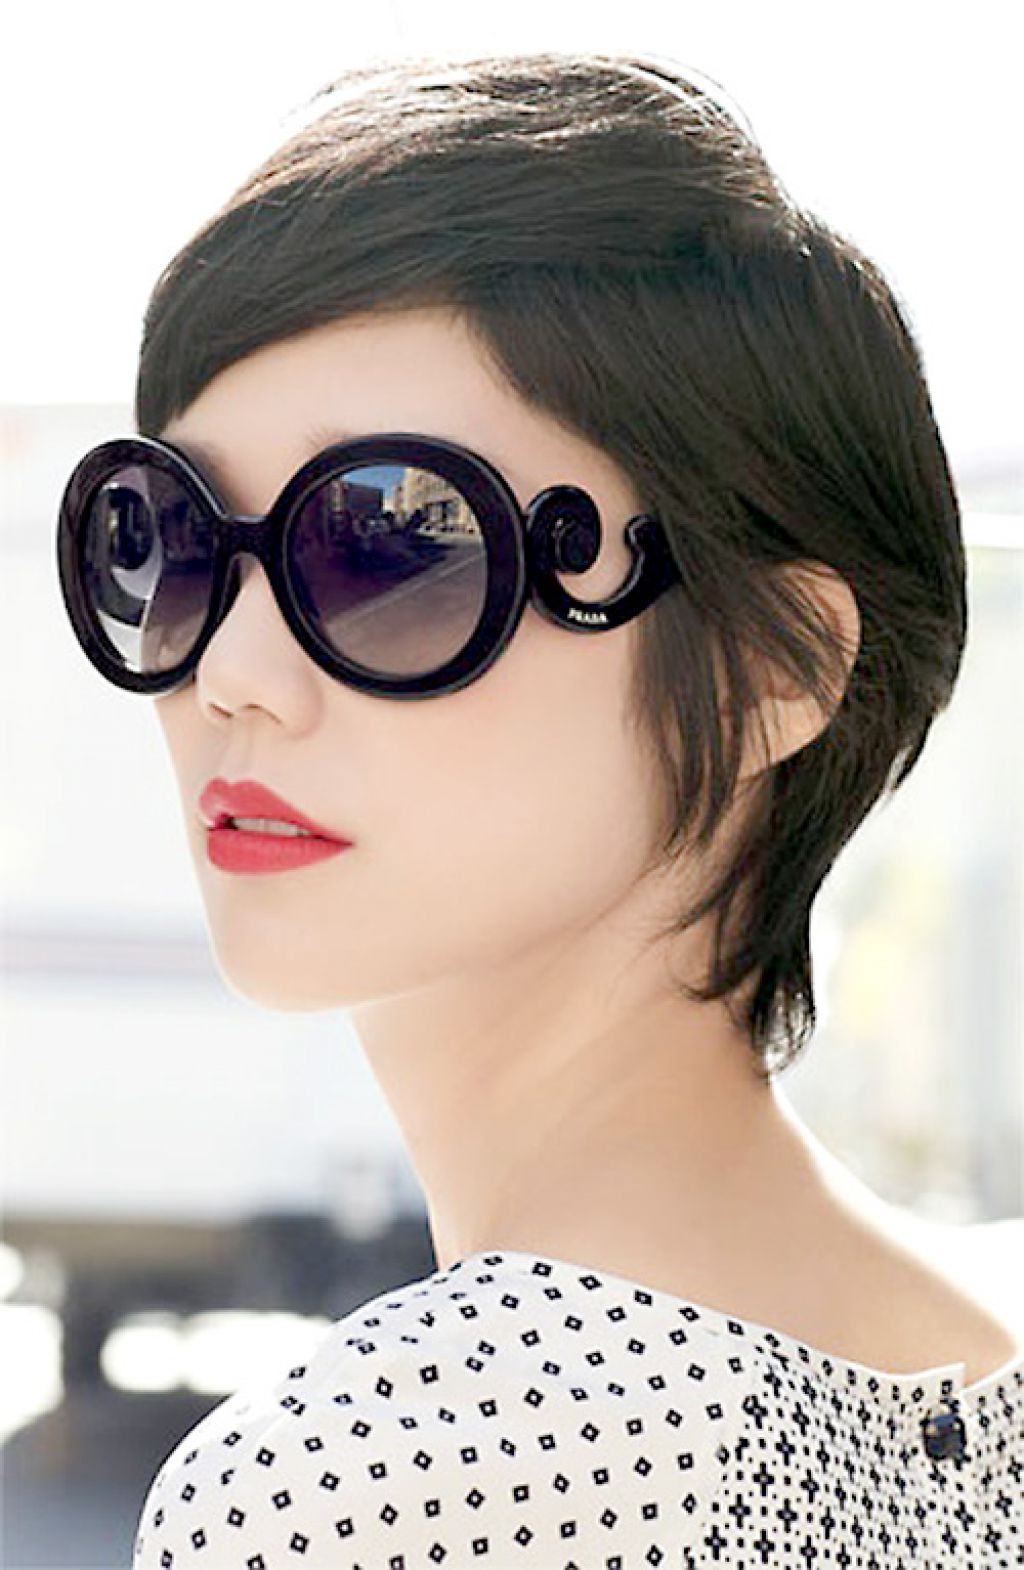 Short Haircuts For Oval Faces Pixie Cuts 2017 Throughout Oval Face Short Hair (View 20 of 25)